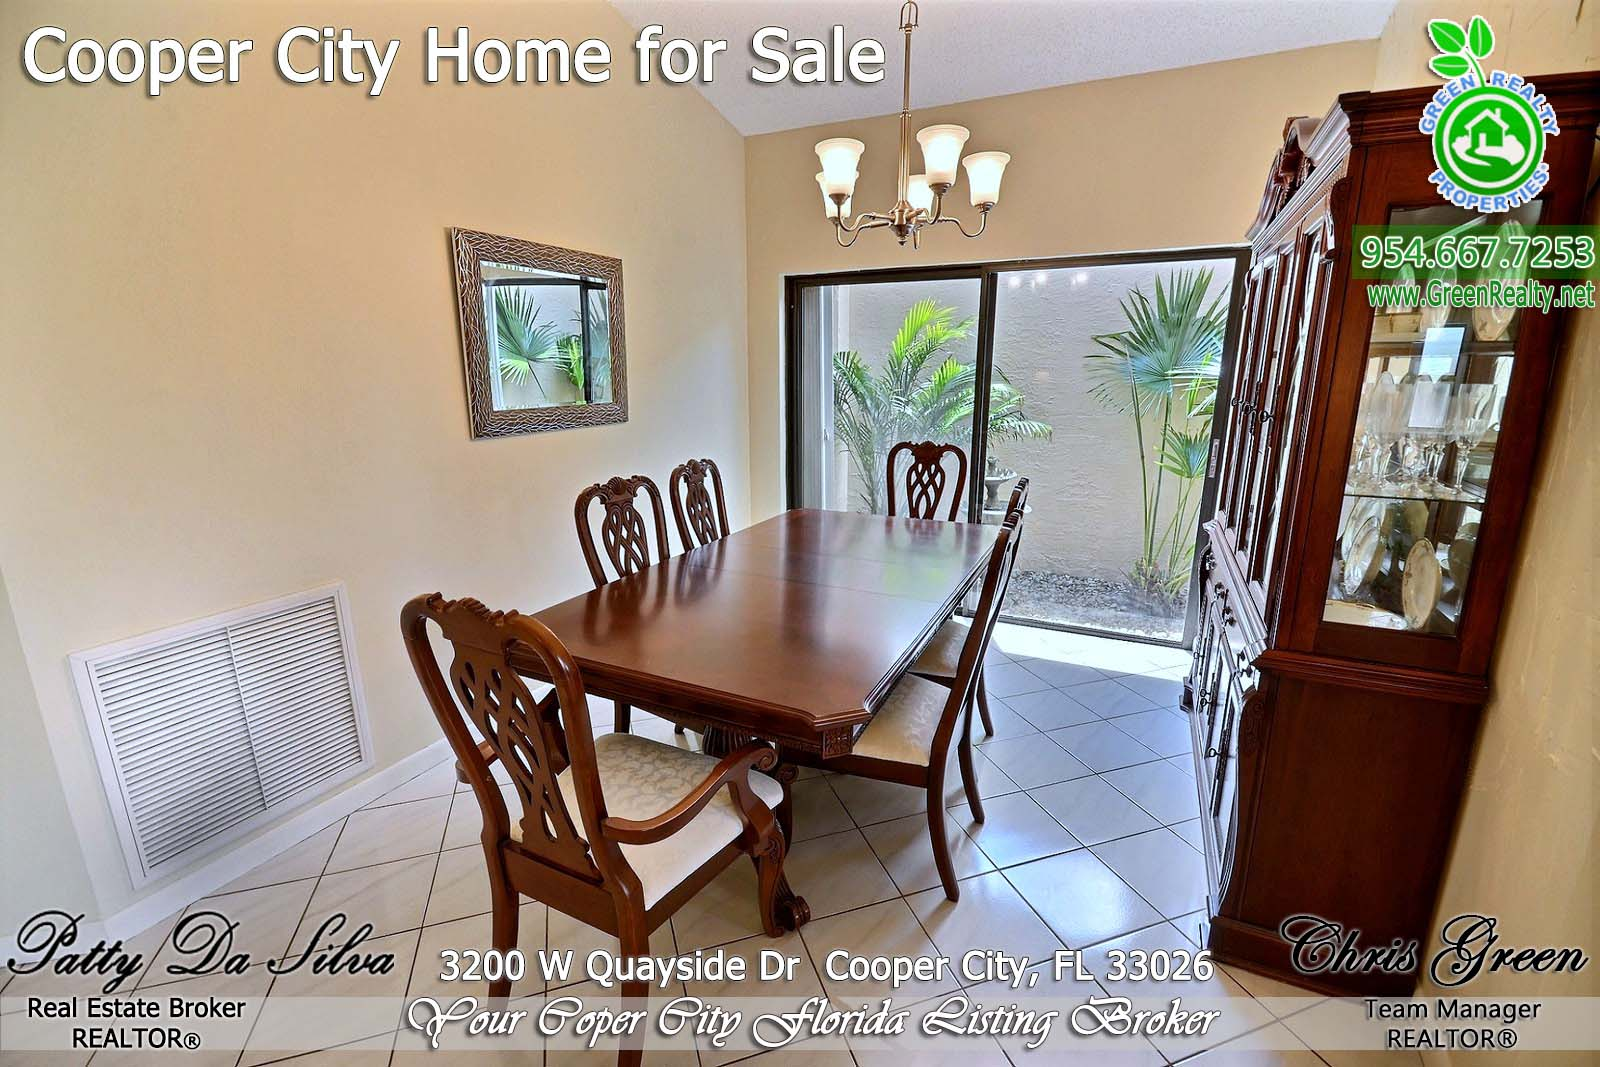 11 Cooper City Homes For Sale in Rock Creek (5)